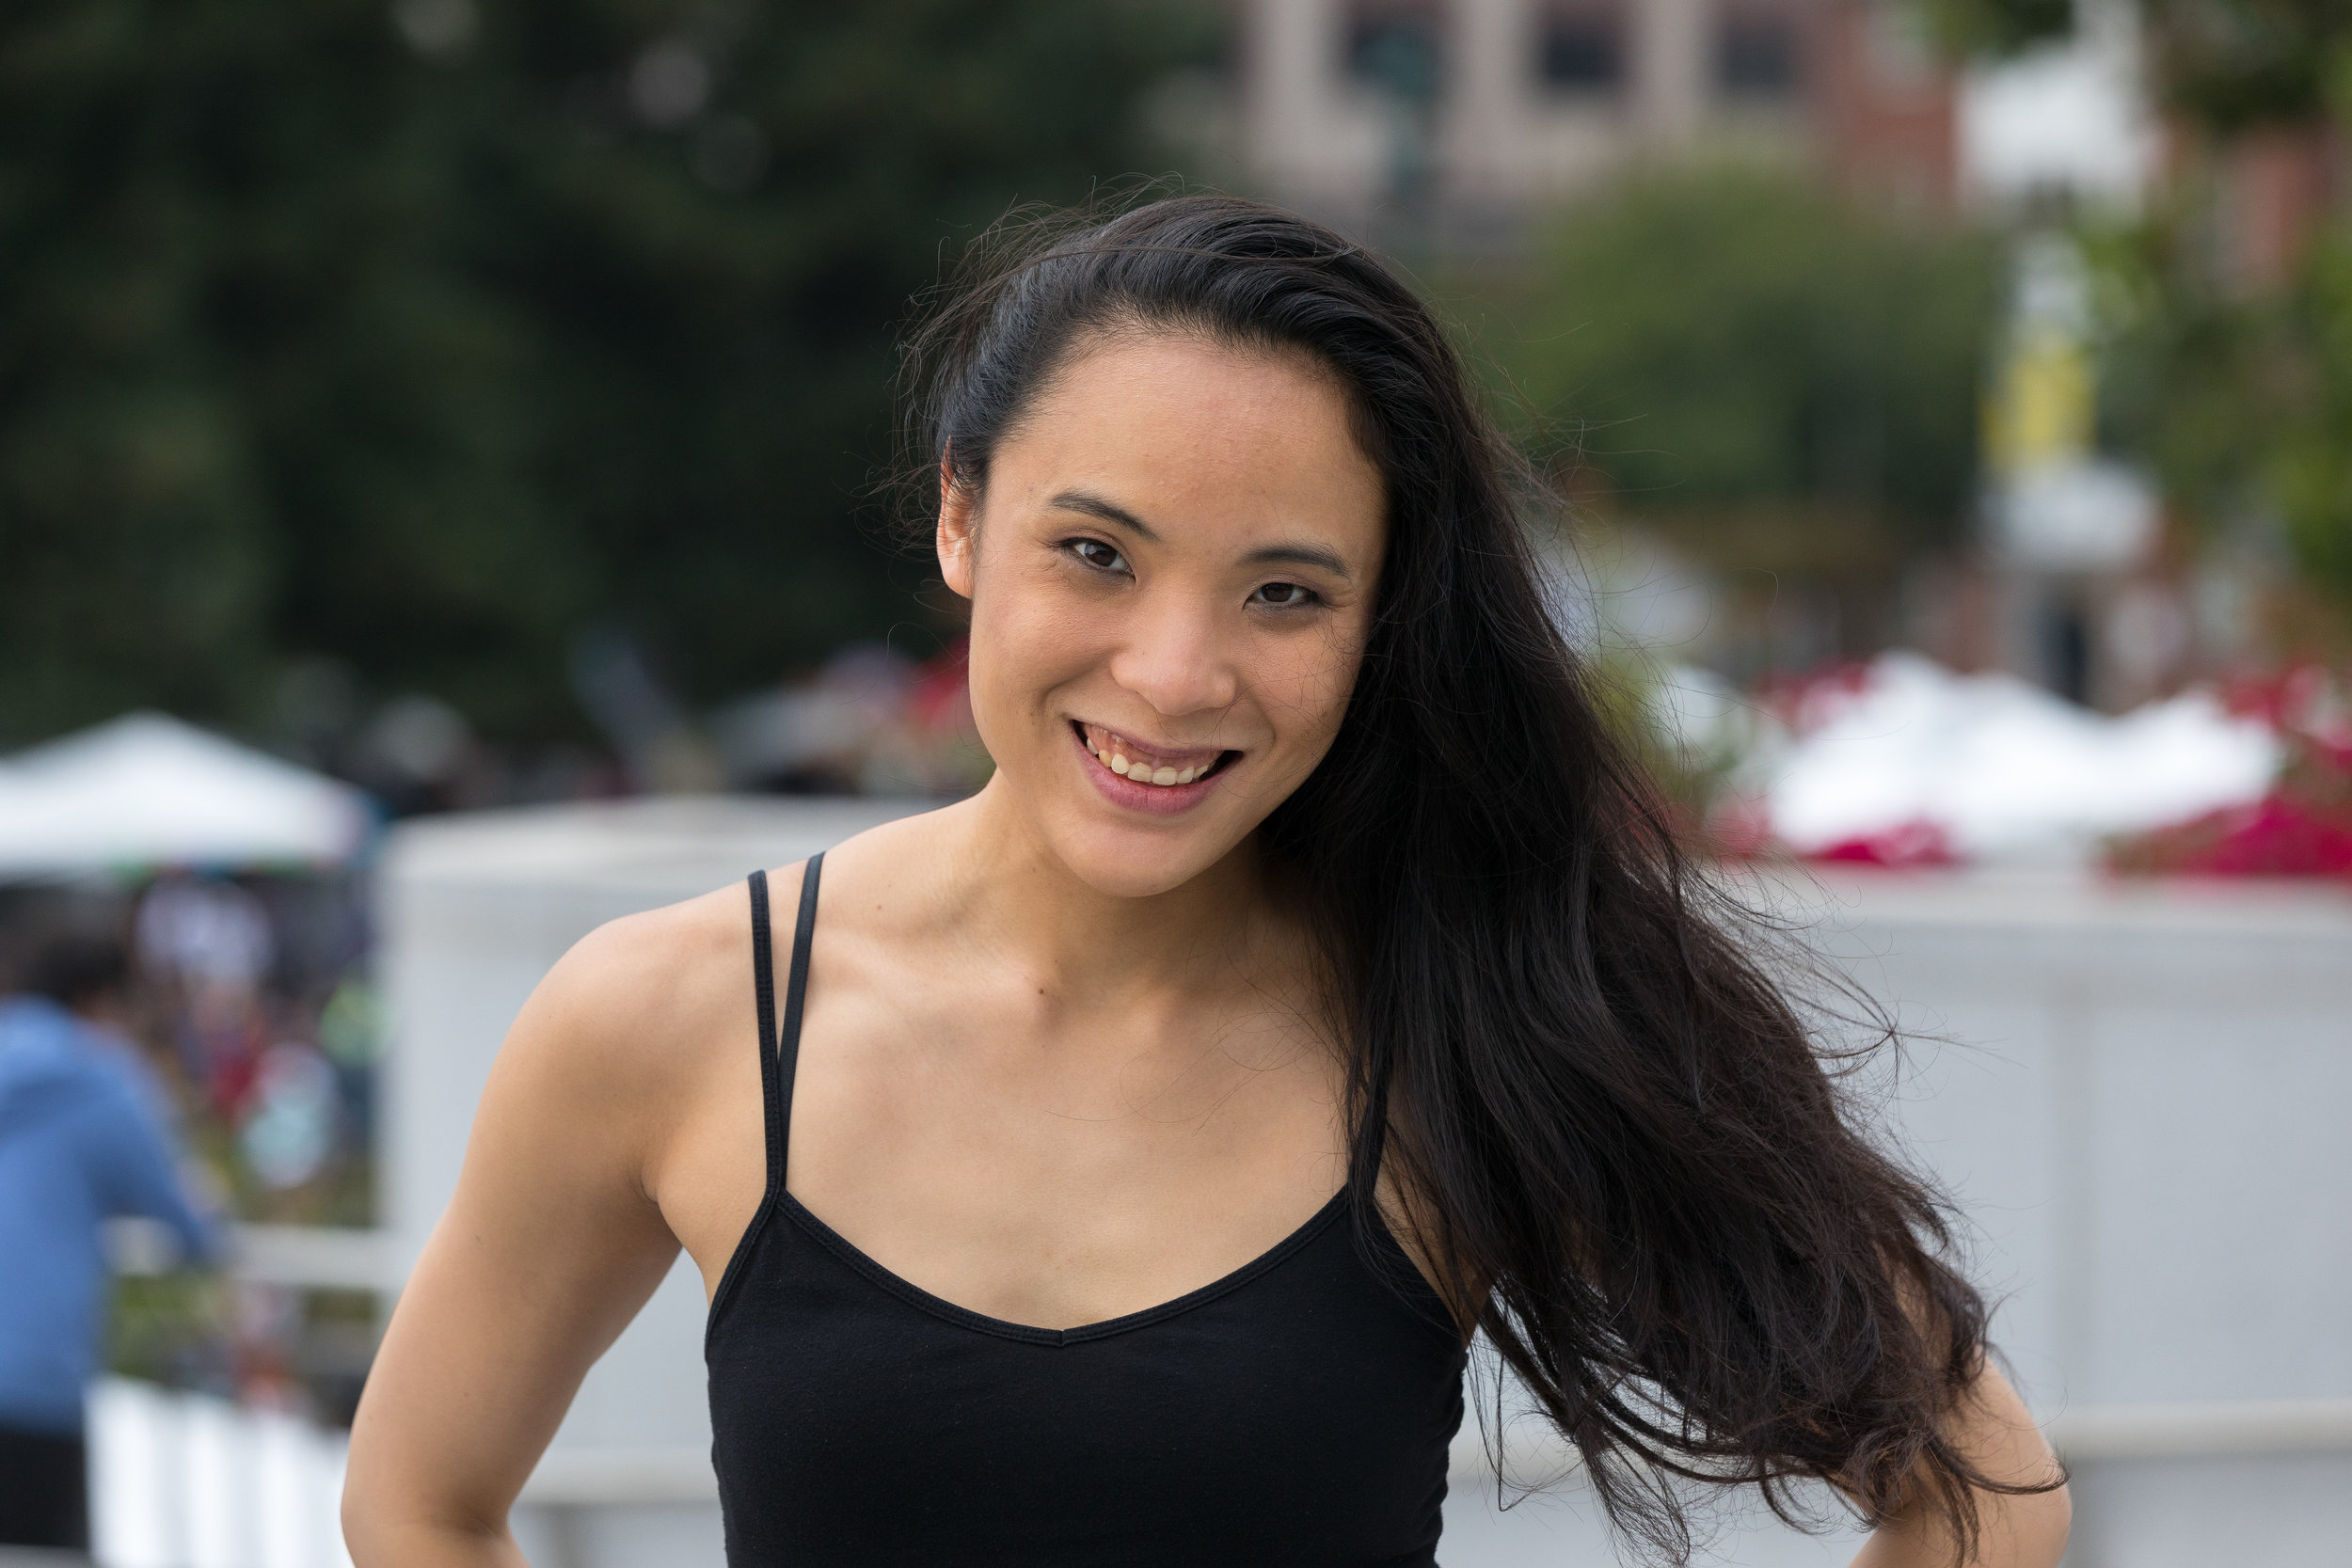 """Dian Sitip Meechai  is a singer, dancer, contortionist, and choreographer. She joins the v2 team as a Dance Co-Captain and part of our talented ensemble. She has done commercial and performance work for Kinda Funny Live, Silversea Cruises, SEGA, and Earth Circus. Born in the """"Boogie Down"""" Bronx, Dian aspired to perform from her earliest days. She sang at city wide and regional events in her youth. While majoring in Computer Science at Northwestern University, she minored in Vocal Performance and competed in their DanceSport team. Upon graduating, Dian branched into contortion and dance styles like jazz, hip hop and contemporary. Dian's vocal repertoire includes jazz, classical and musical theater. She recently played The Girl and was dance captain in Landmark Musical Theatre's Roar of the Greasepaint, Smell of the Crowd. Other credits include singing onboard the international-sailing Silver Spirit, choreographing for the 2017 Nitey Awards and contorting at various Bay Area dinner theaters. She's pumped to join the SOMA v2 cast!"""